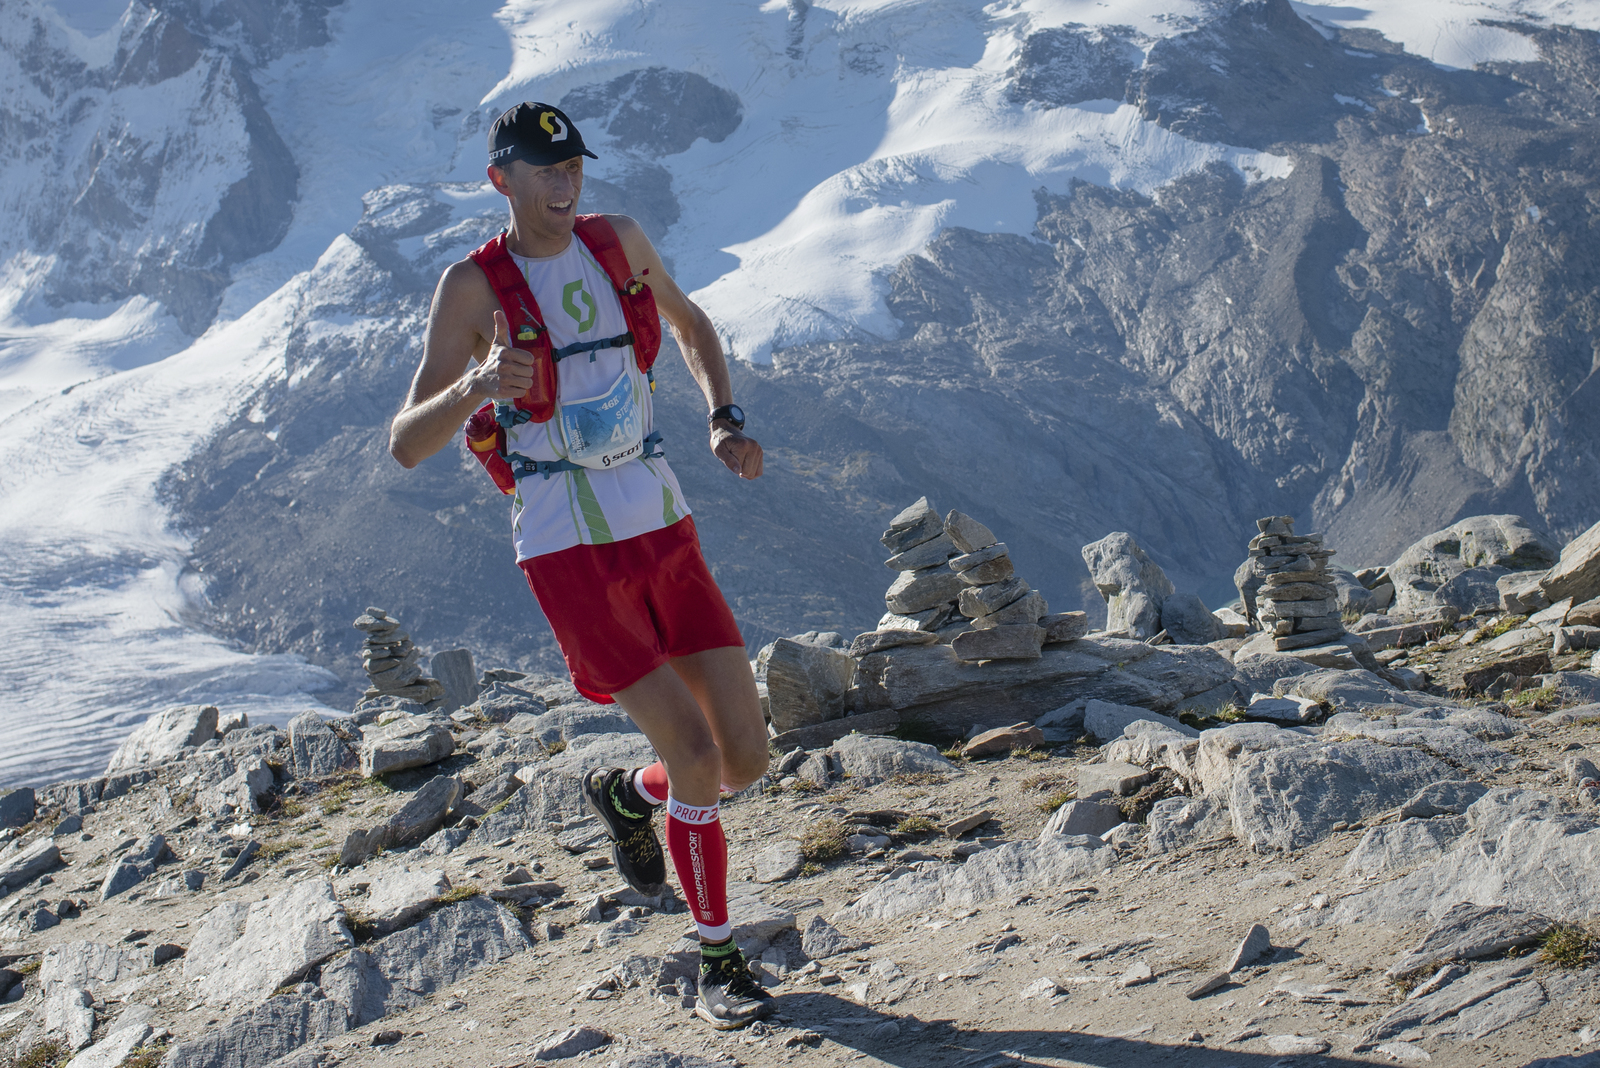 Matterhorn_Ultraks_Action Image_2015_RUNNING_SCOTT-Sports_EN0106